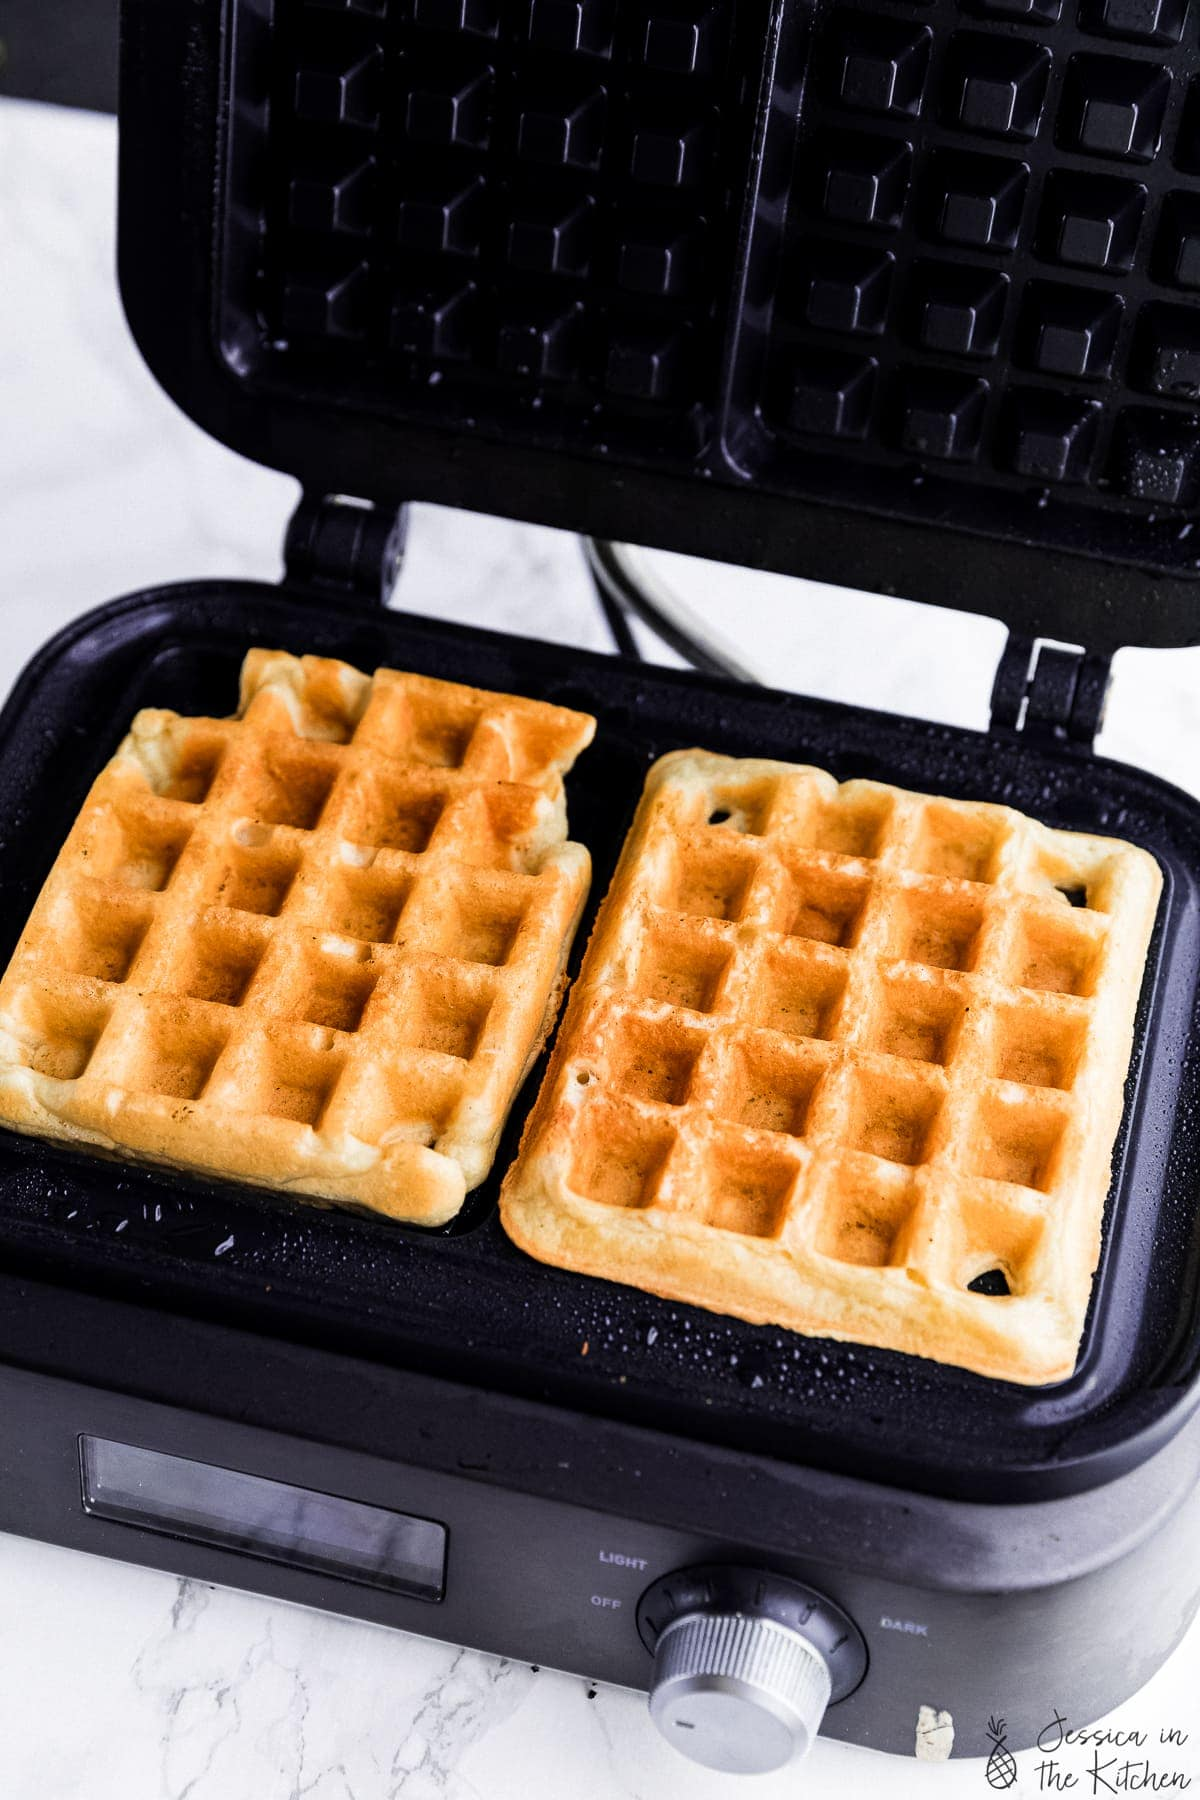 photo of made waffles in a waffle maker